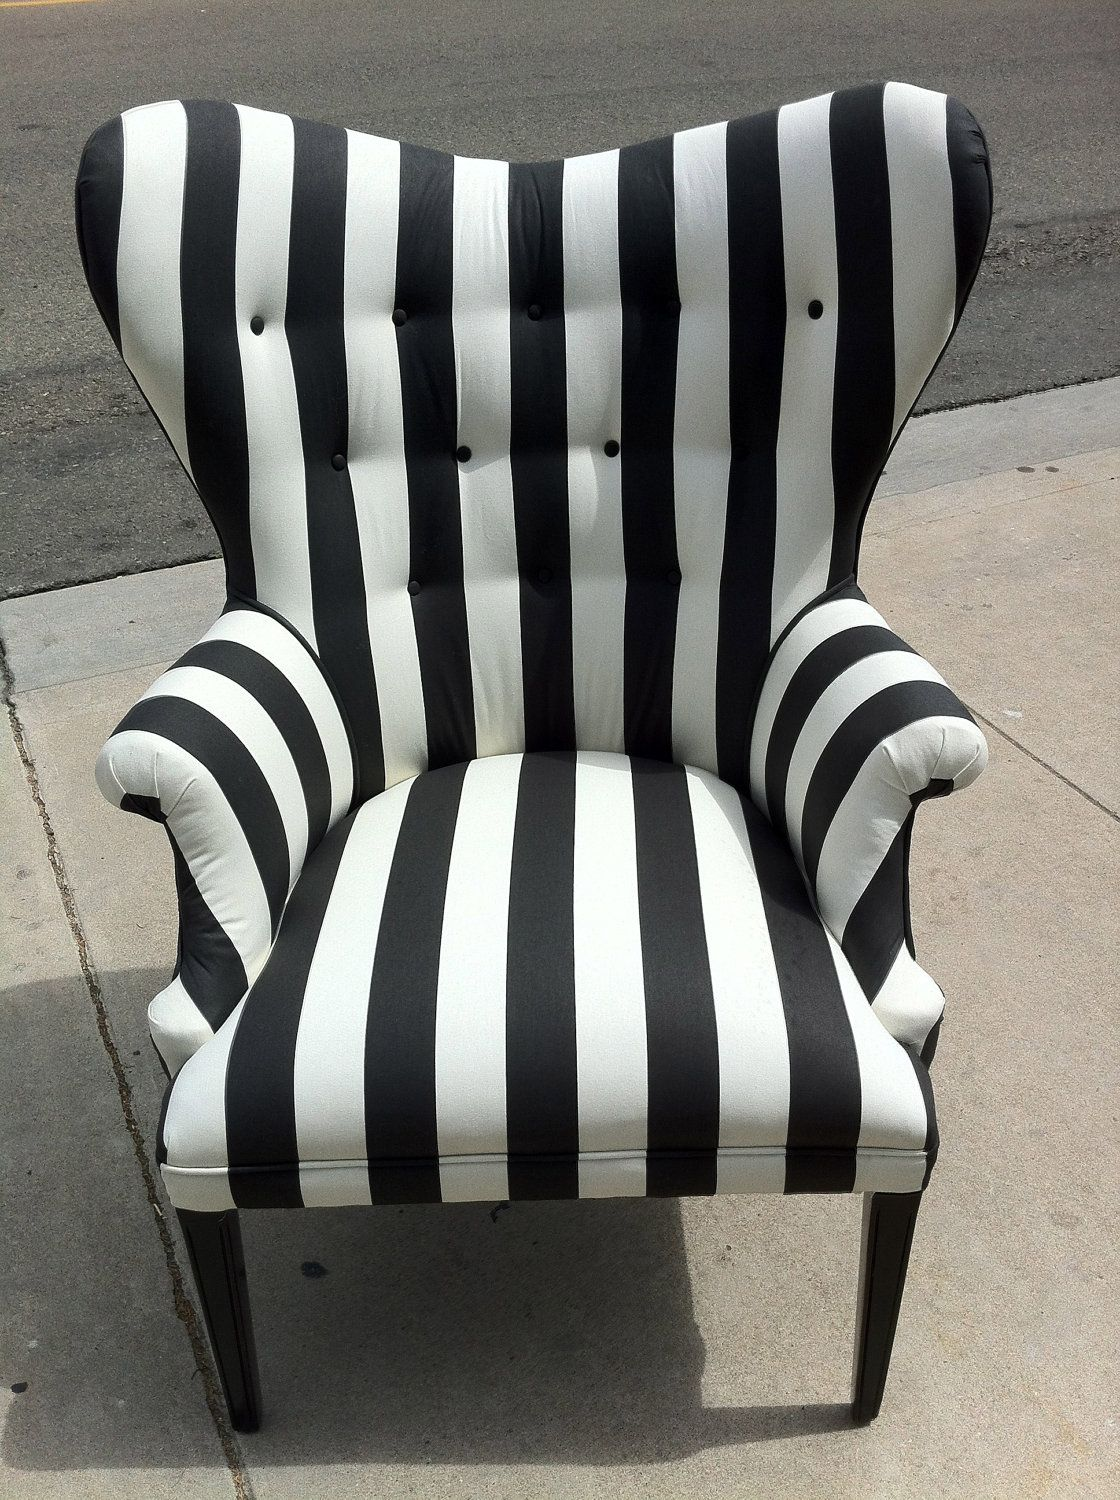 Best Black And White Striped Chair By Poeticrockstar On Etsy 400 x 300